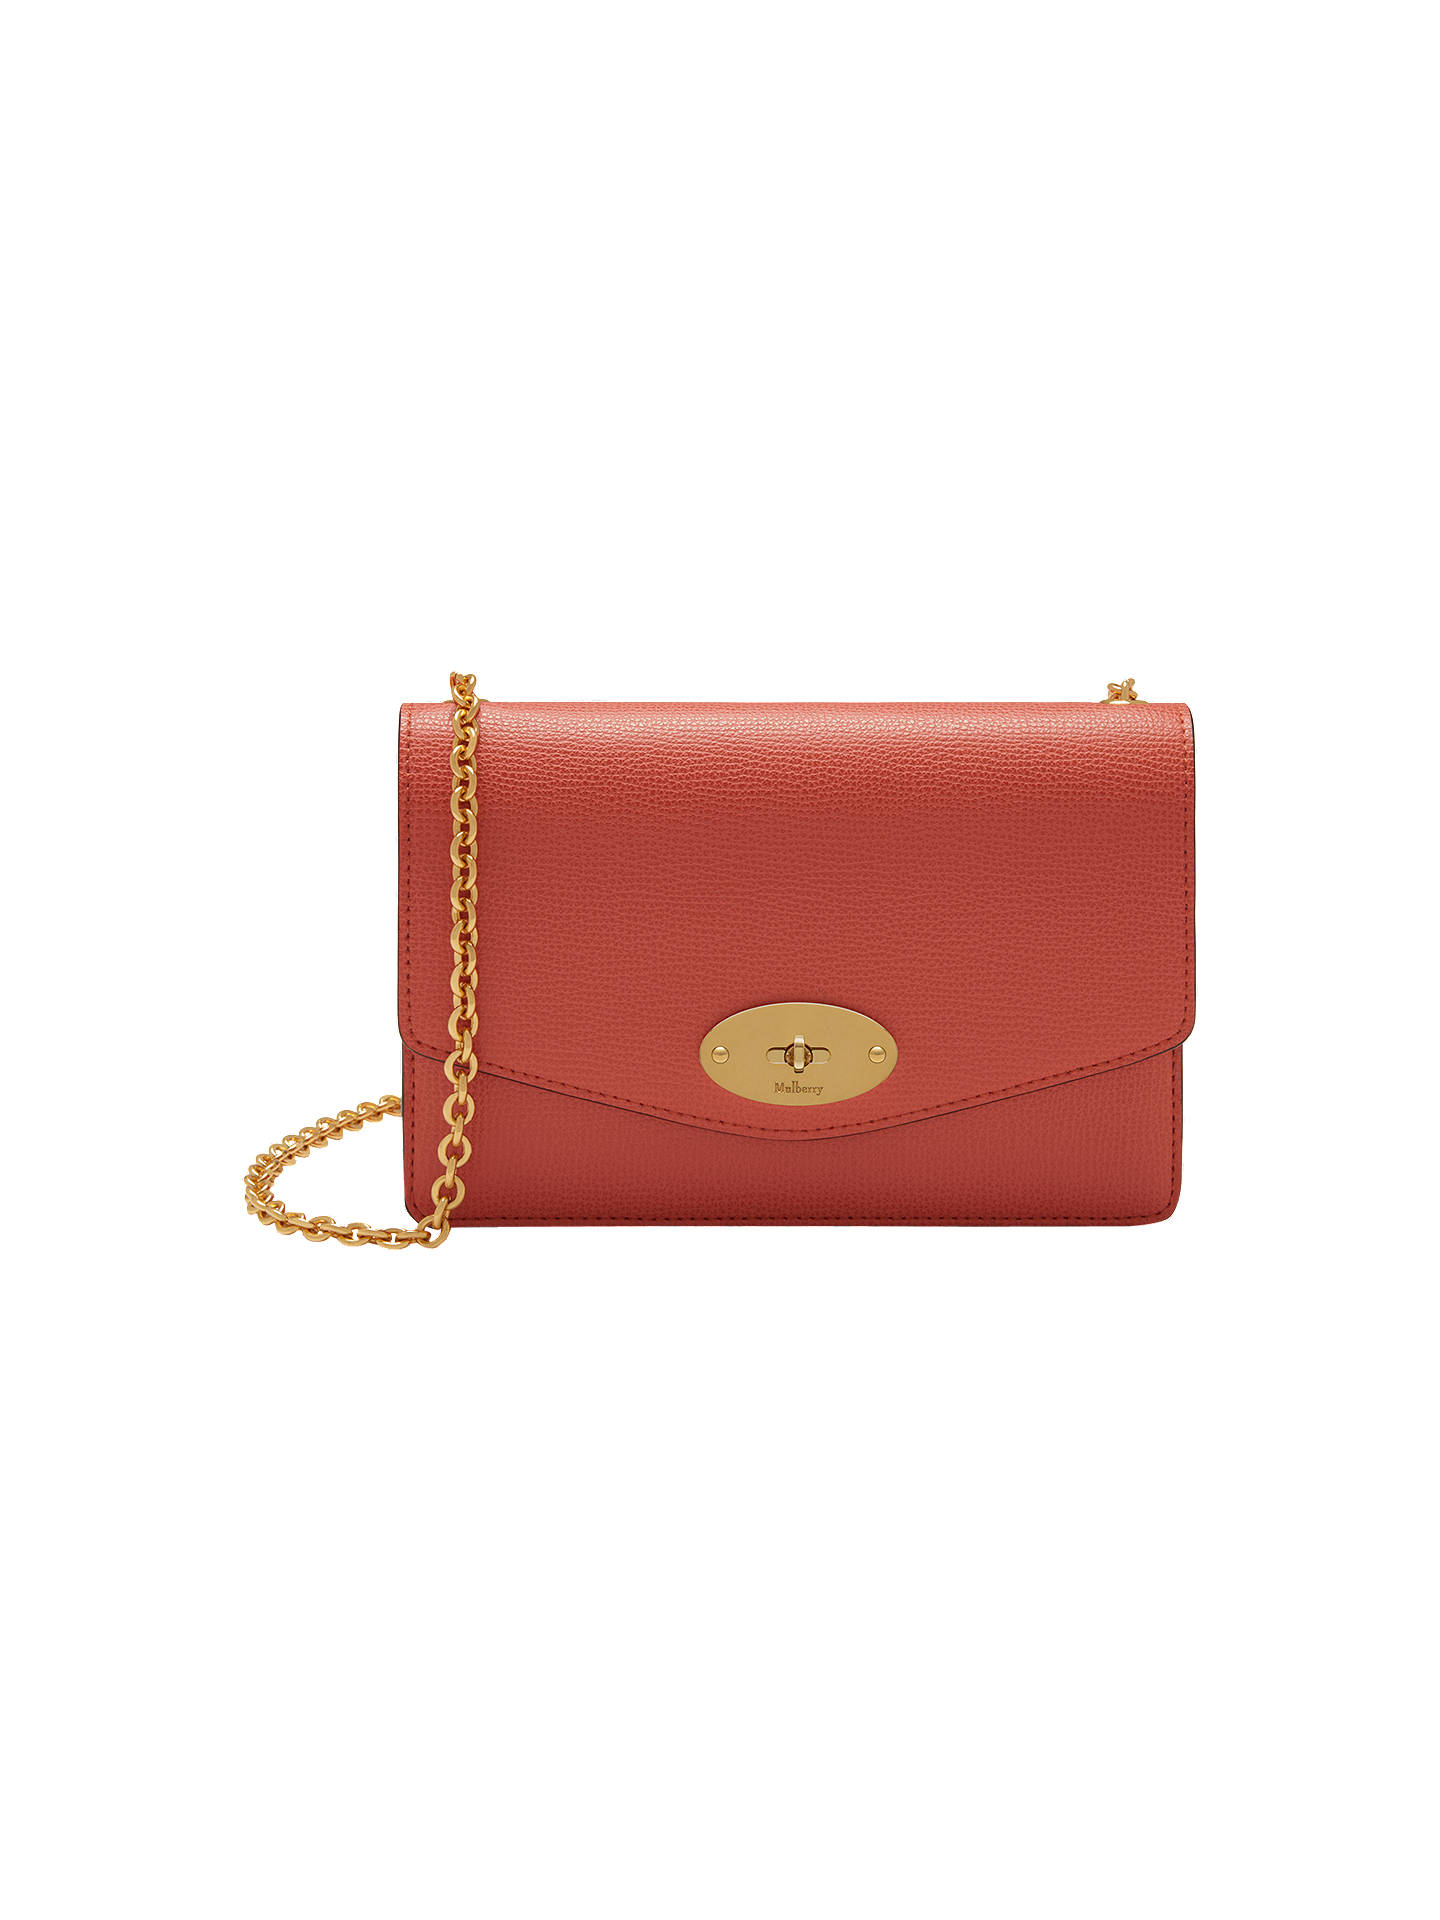 Mulberry Darley Small Grain Leather Cross Body Bag at John Lewis ... 78caf67343e11